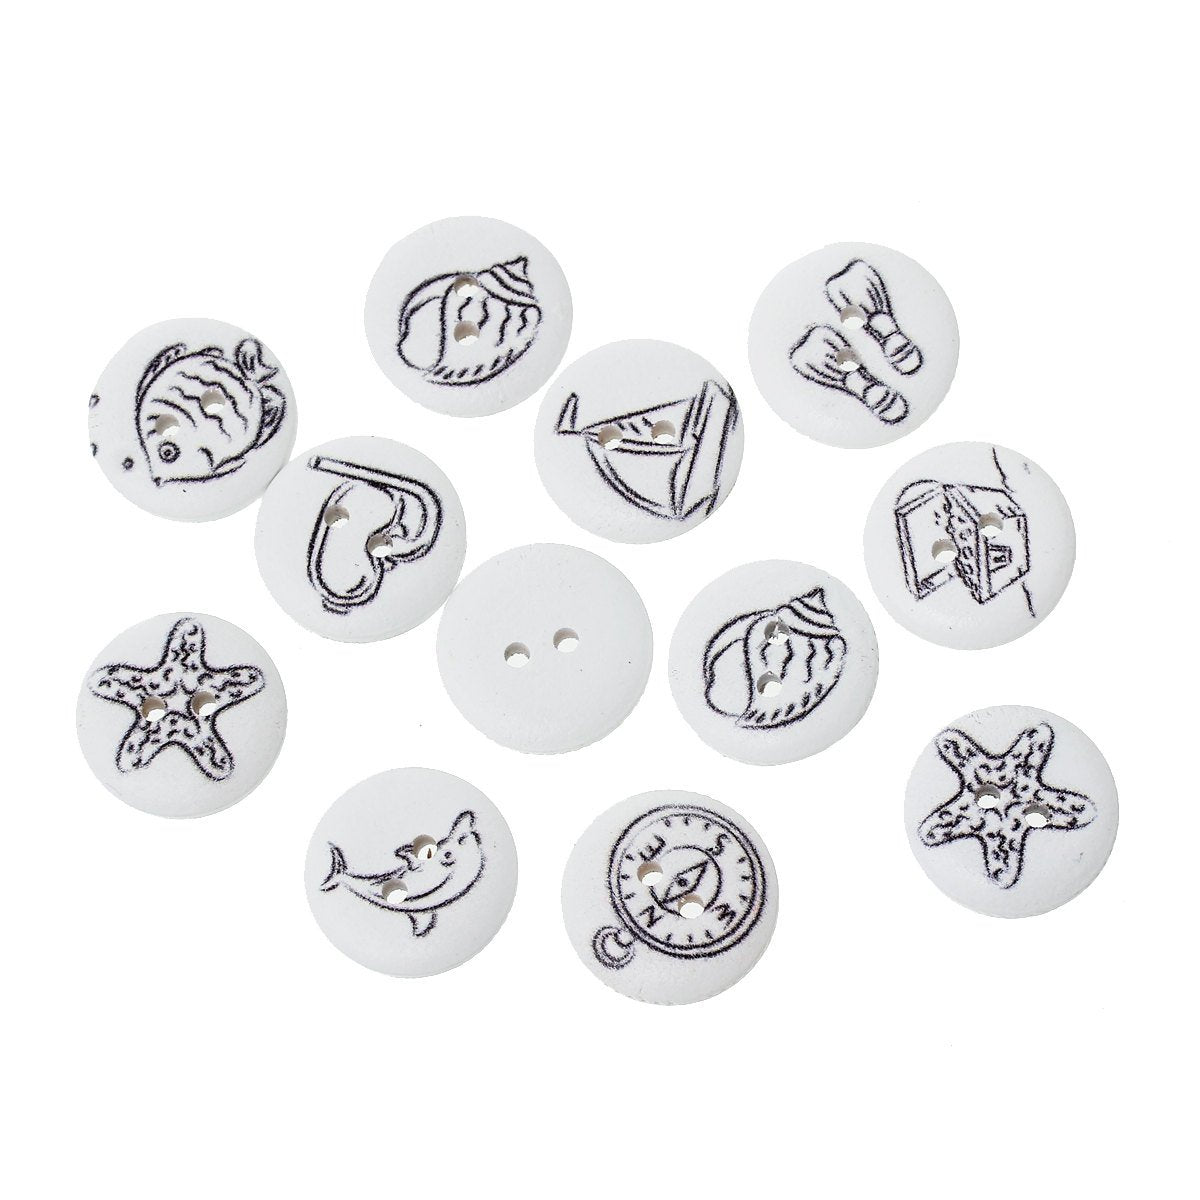 "Nautical Wooden Buttons - Black White - 18mm (3/4"") - Wood Button - Mixed Designs (46822)"